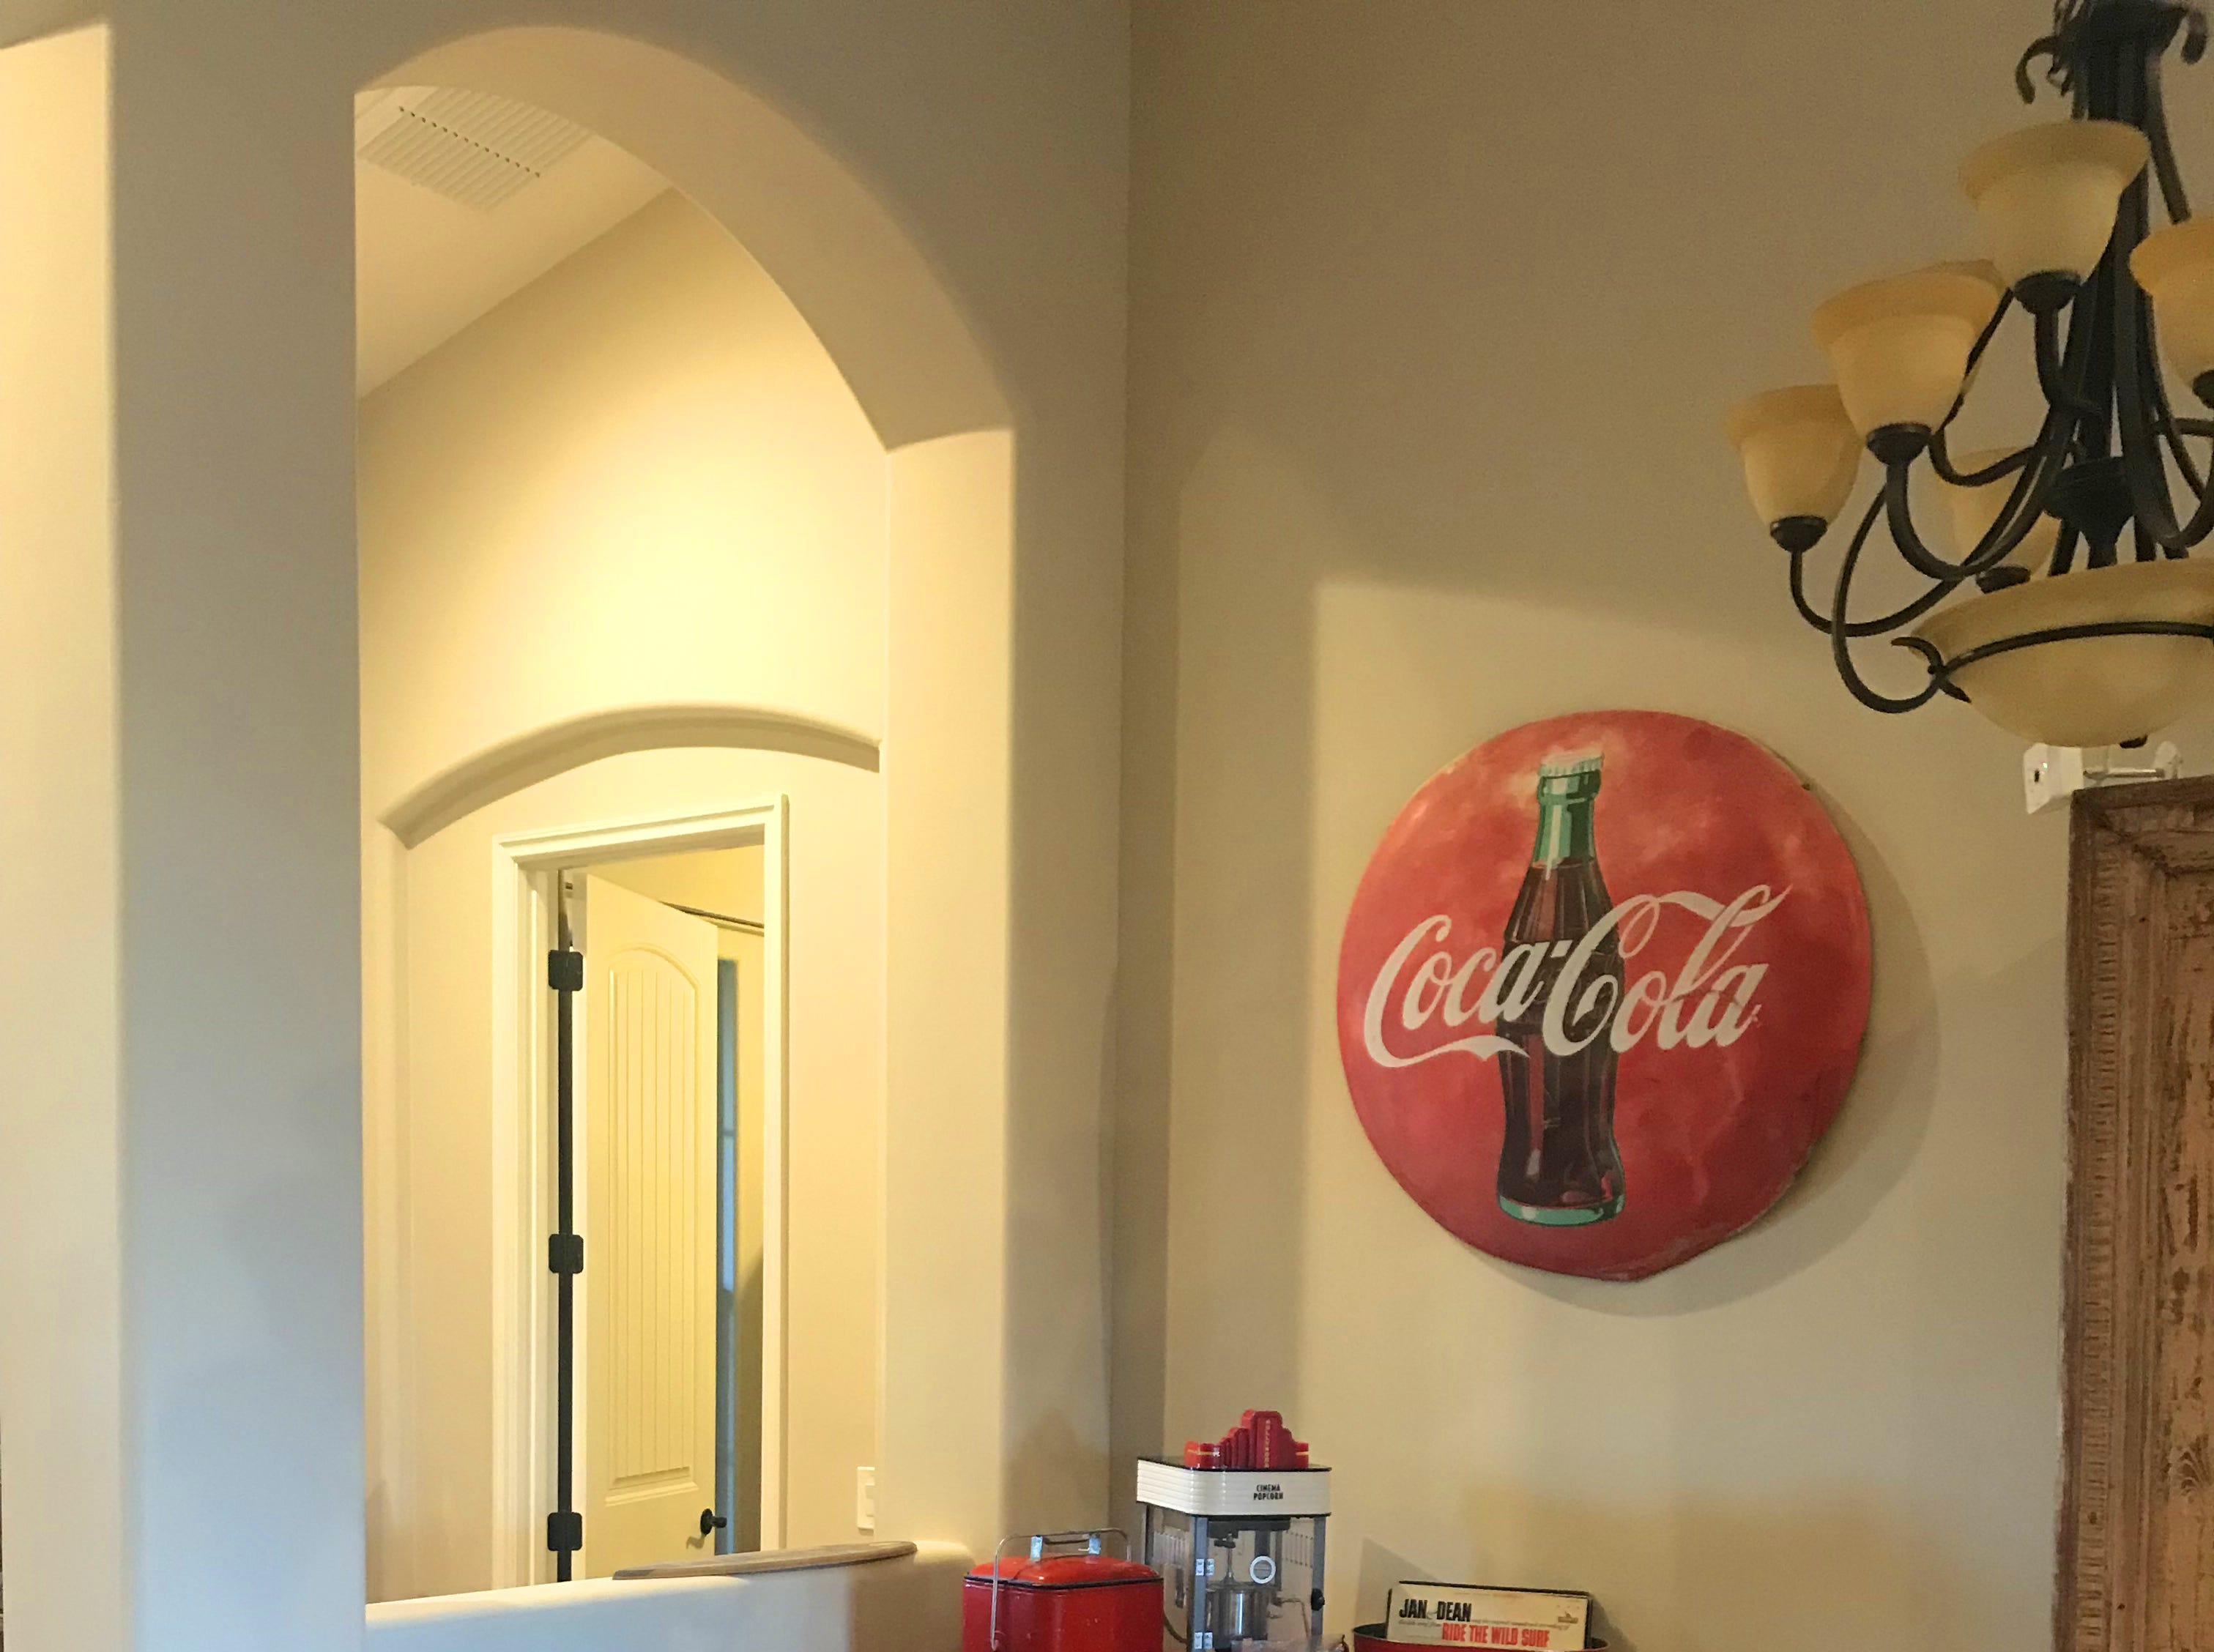 Shelley's vintage Coca-Cola collection includes a functioning vending machine from the 1950's. The top spins and opens enough for one bottle to be removed when a dime is inserted.